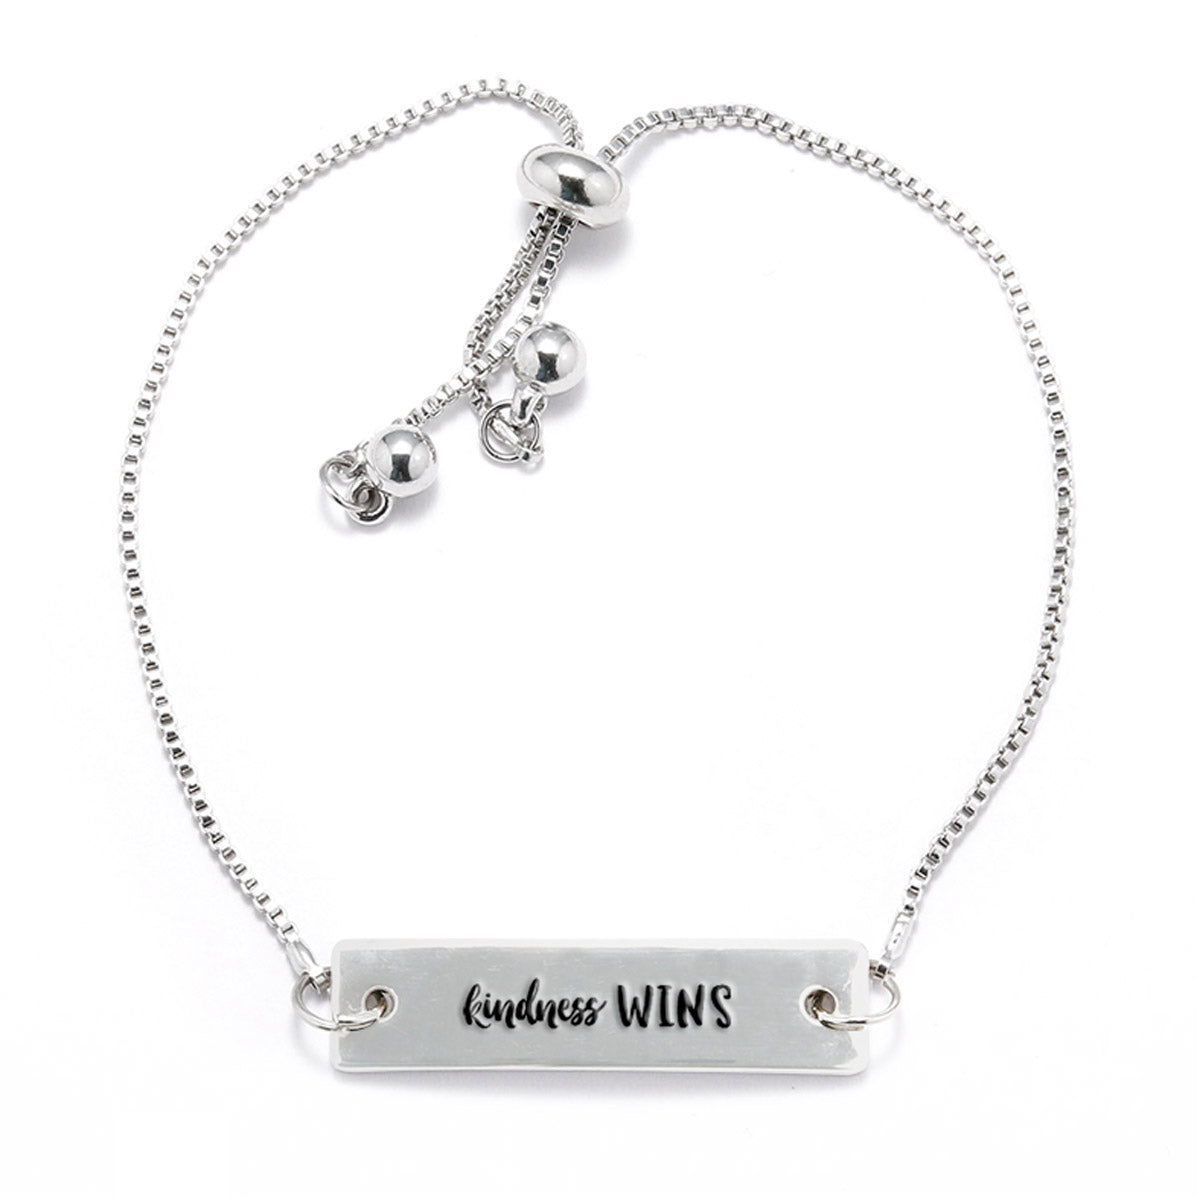 Kindness Wins Silver Bar Adjustable Bracelet - pipercleo.com